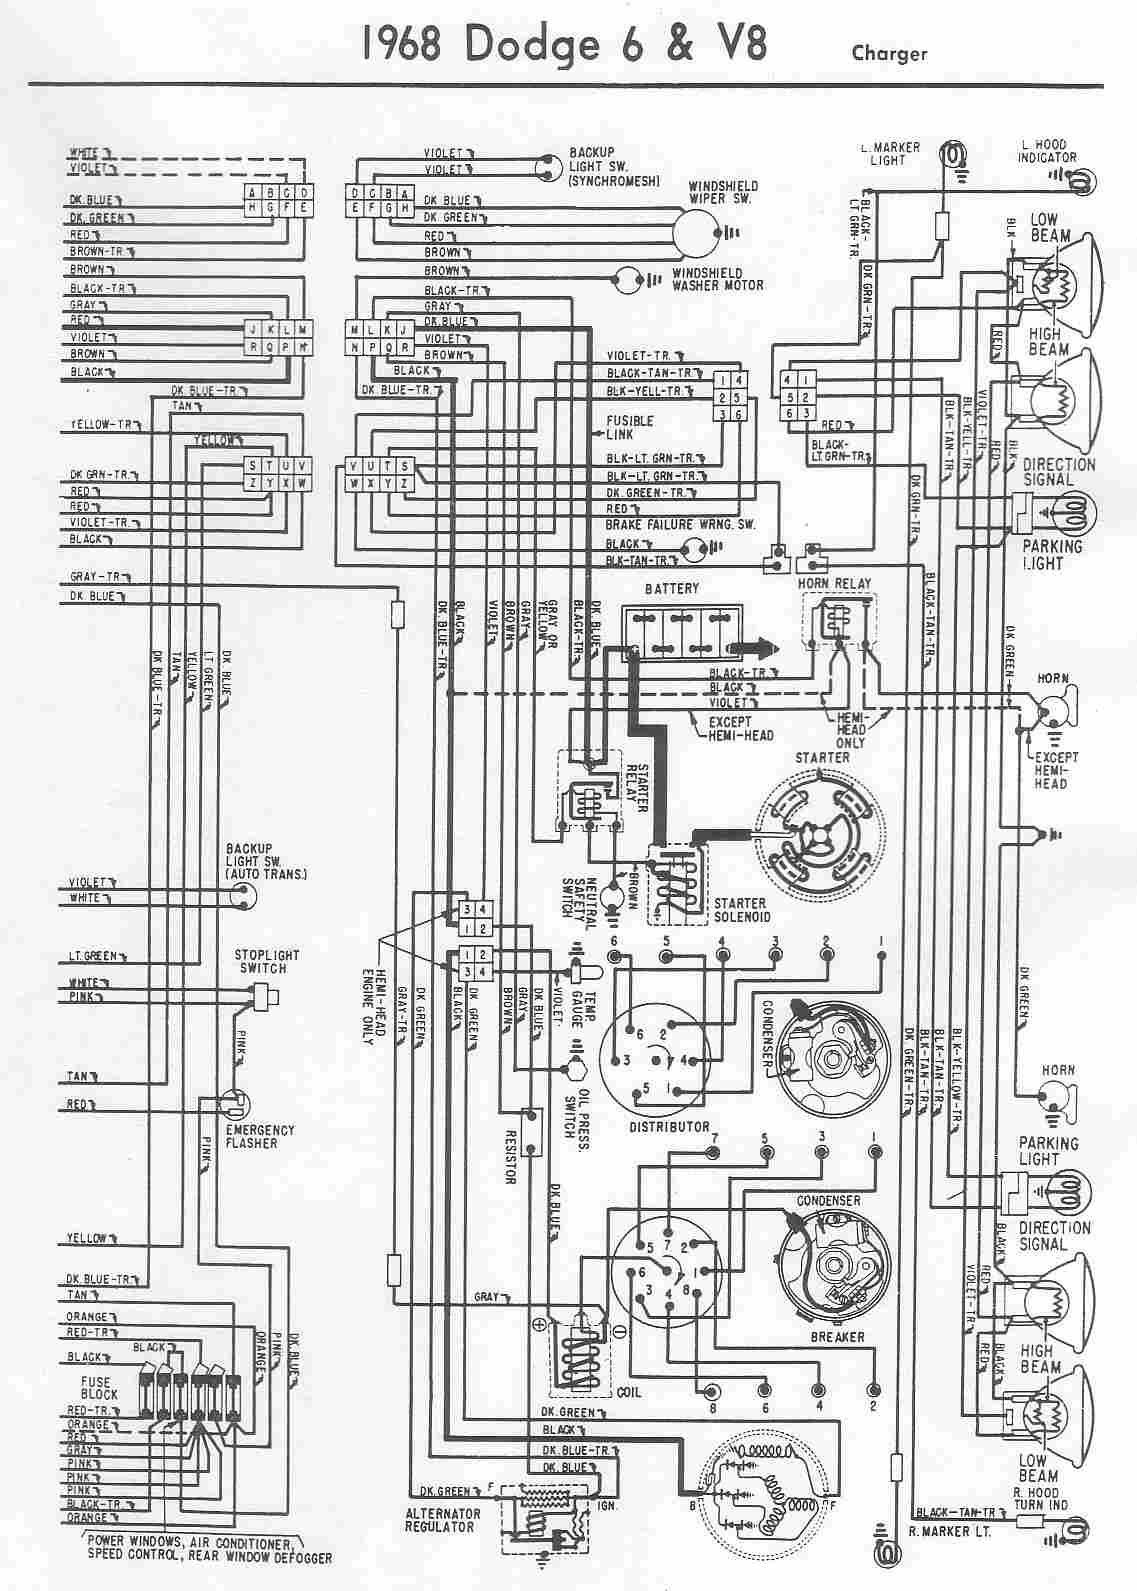 chrysler wiring diagrams schematics diagram onan genset dodge - car manuals, pdf & fault codes